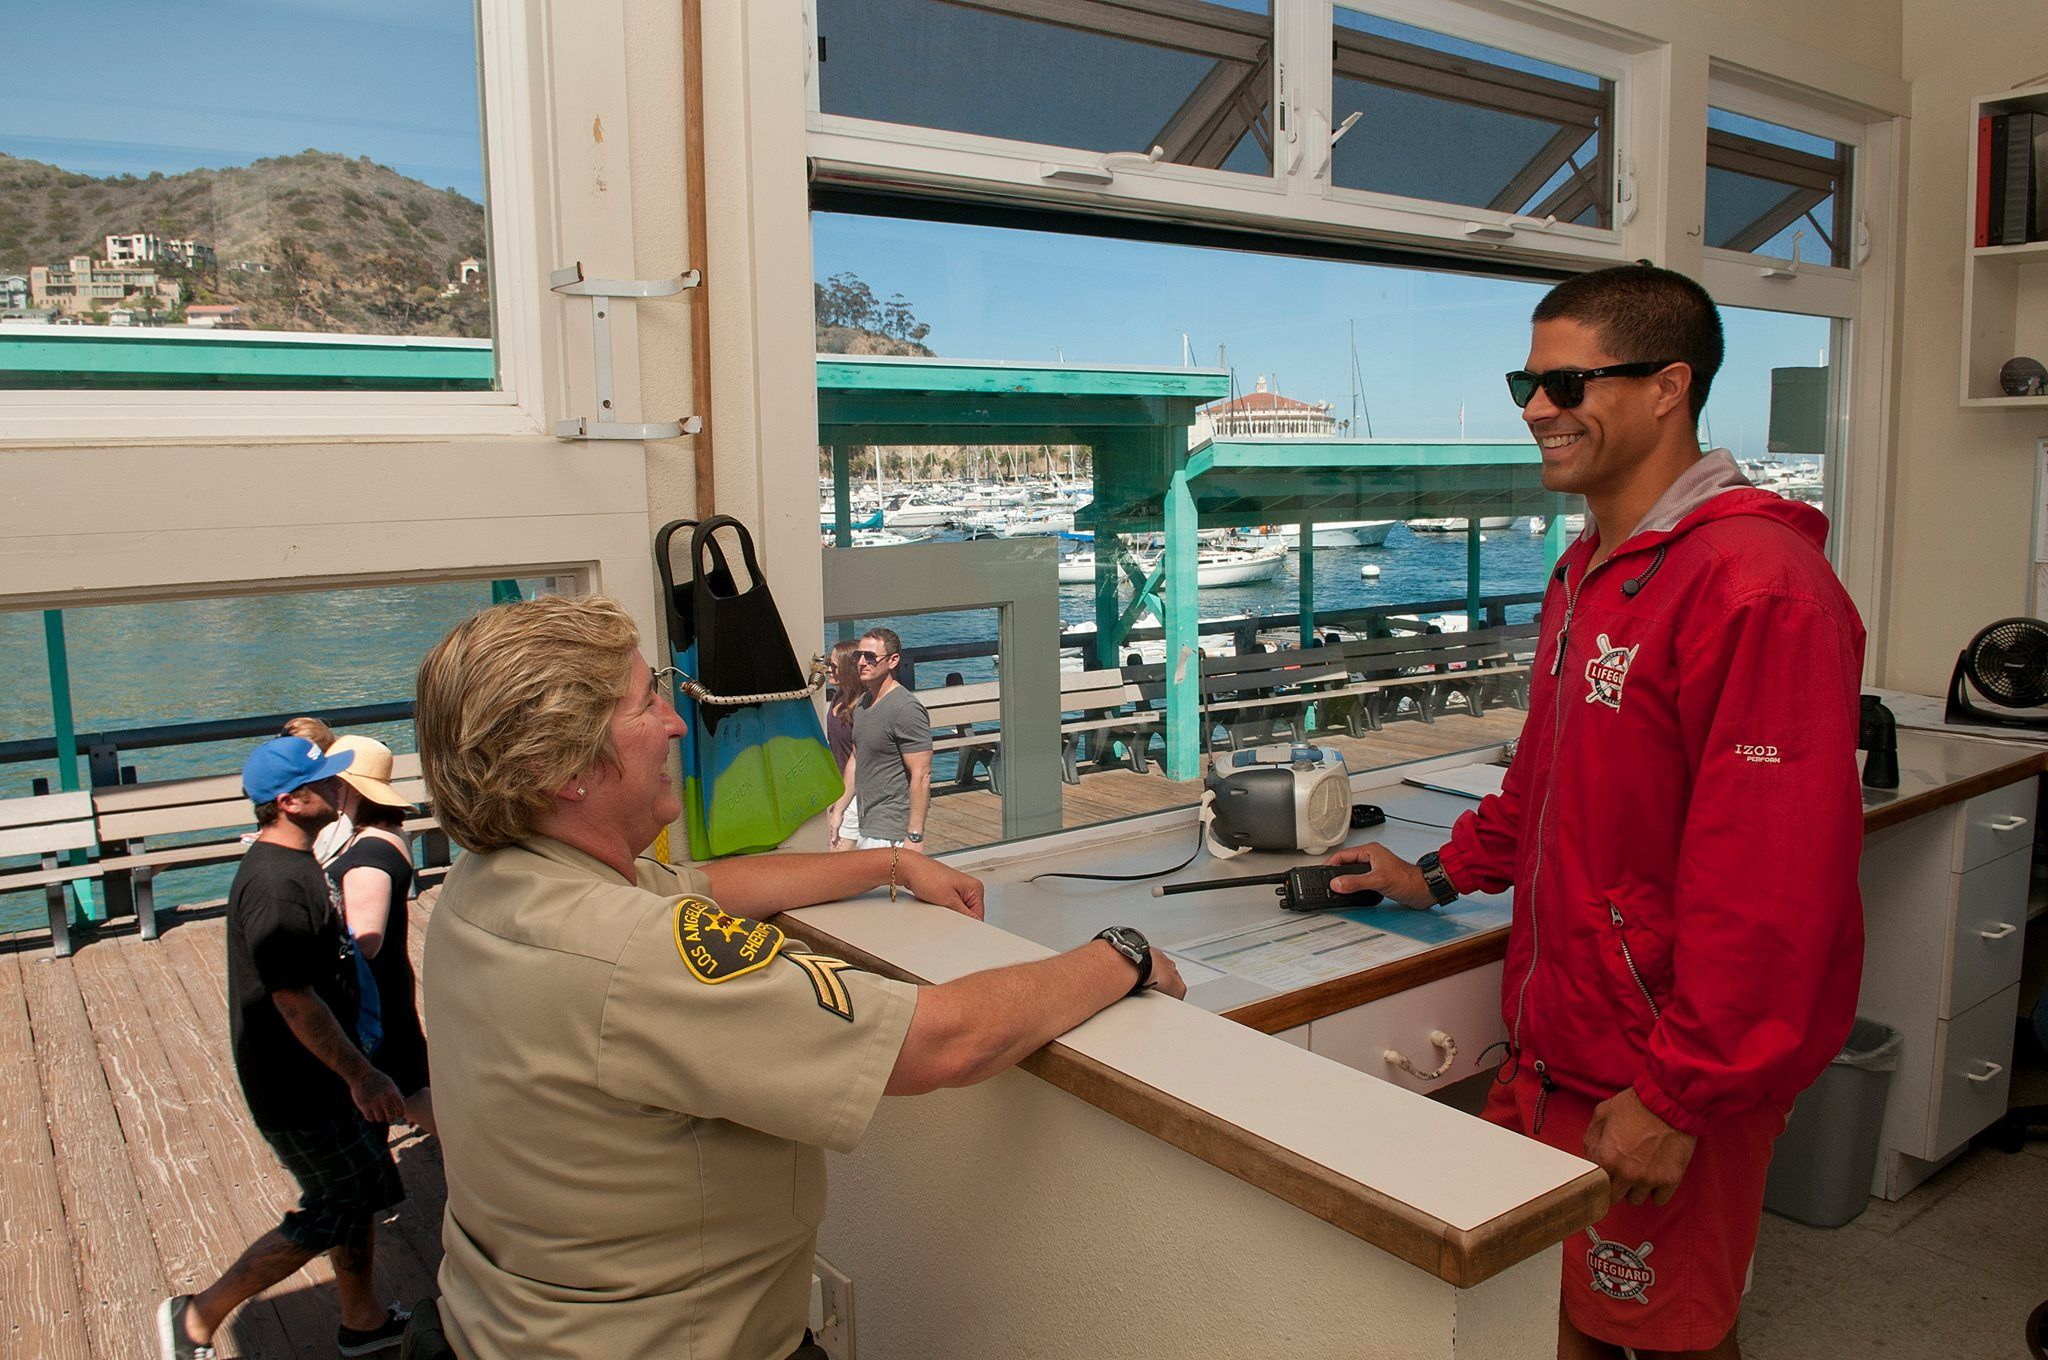 Lasd Working With The Lifeguards Of Catalina Island Catalina